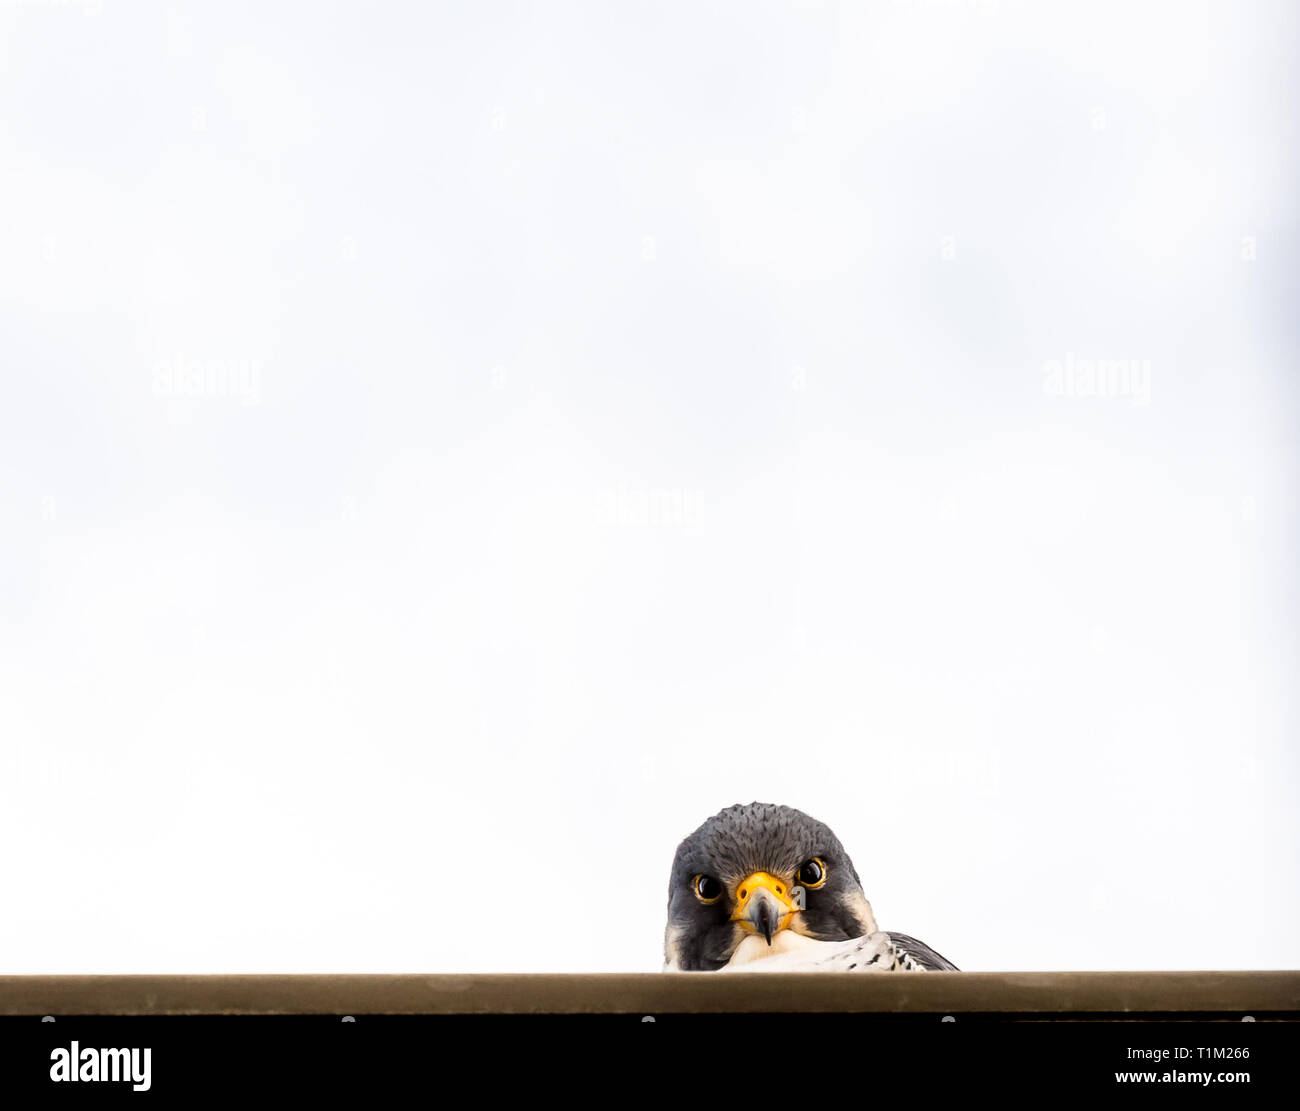 Peregrine Falcon peering over a wall. - Stock Image